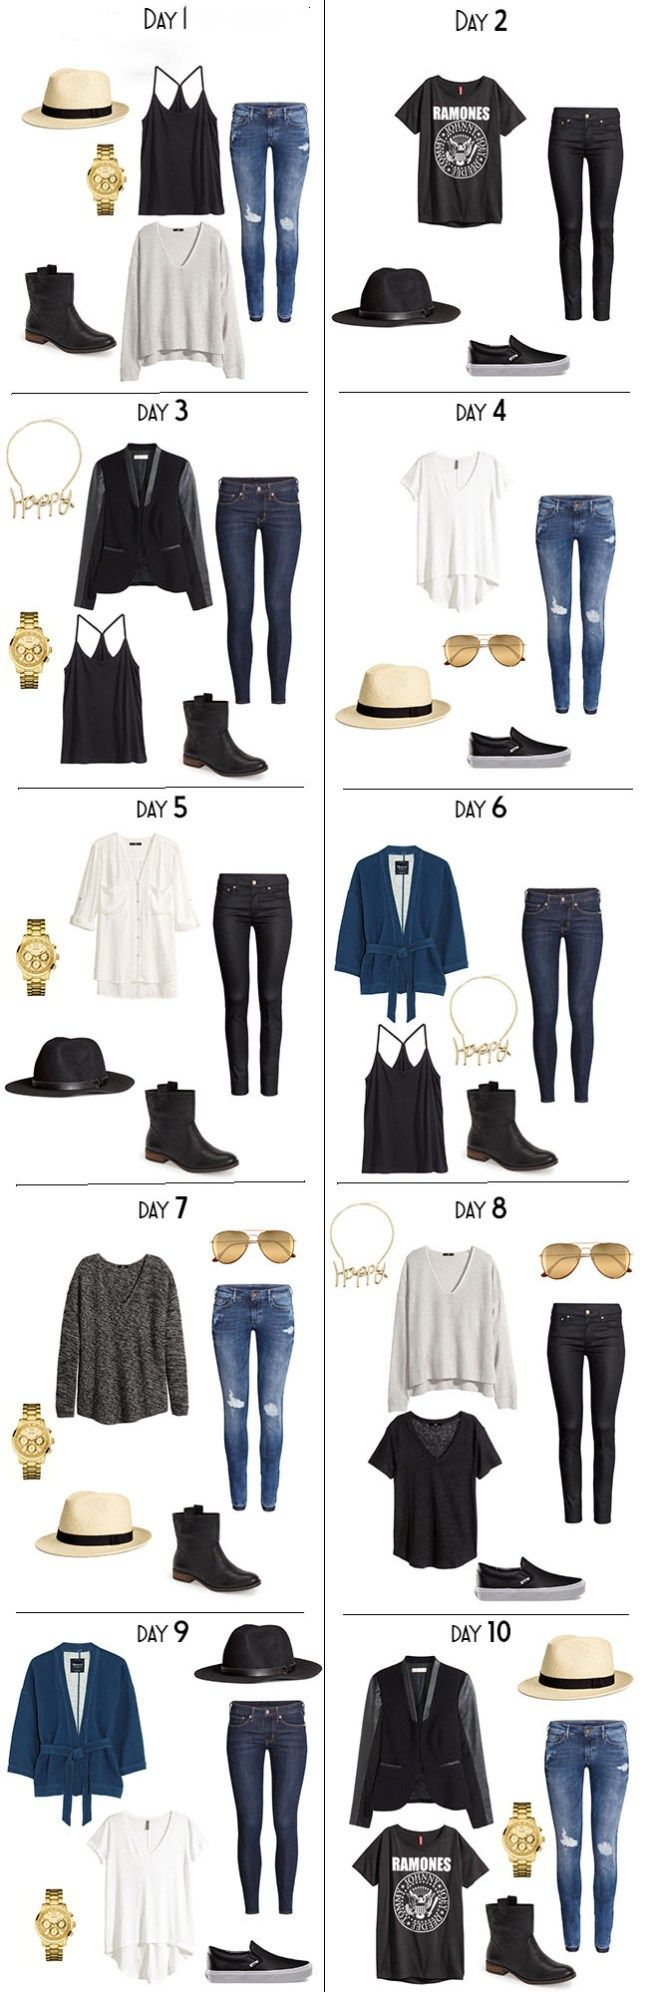 10 Days Family Vacation Outfit Options Packing Light #travellight #packinglight #traveltips #travel